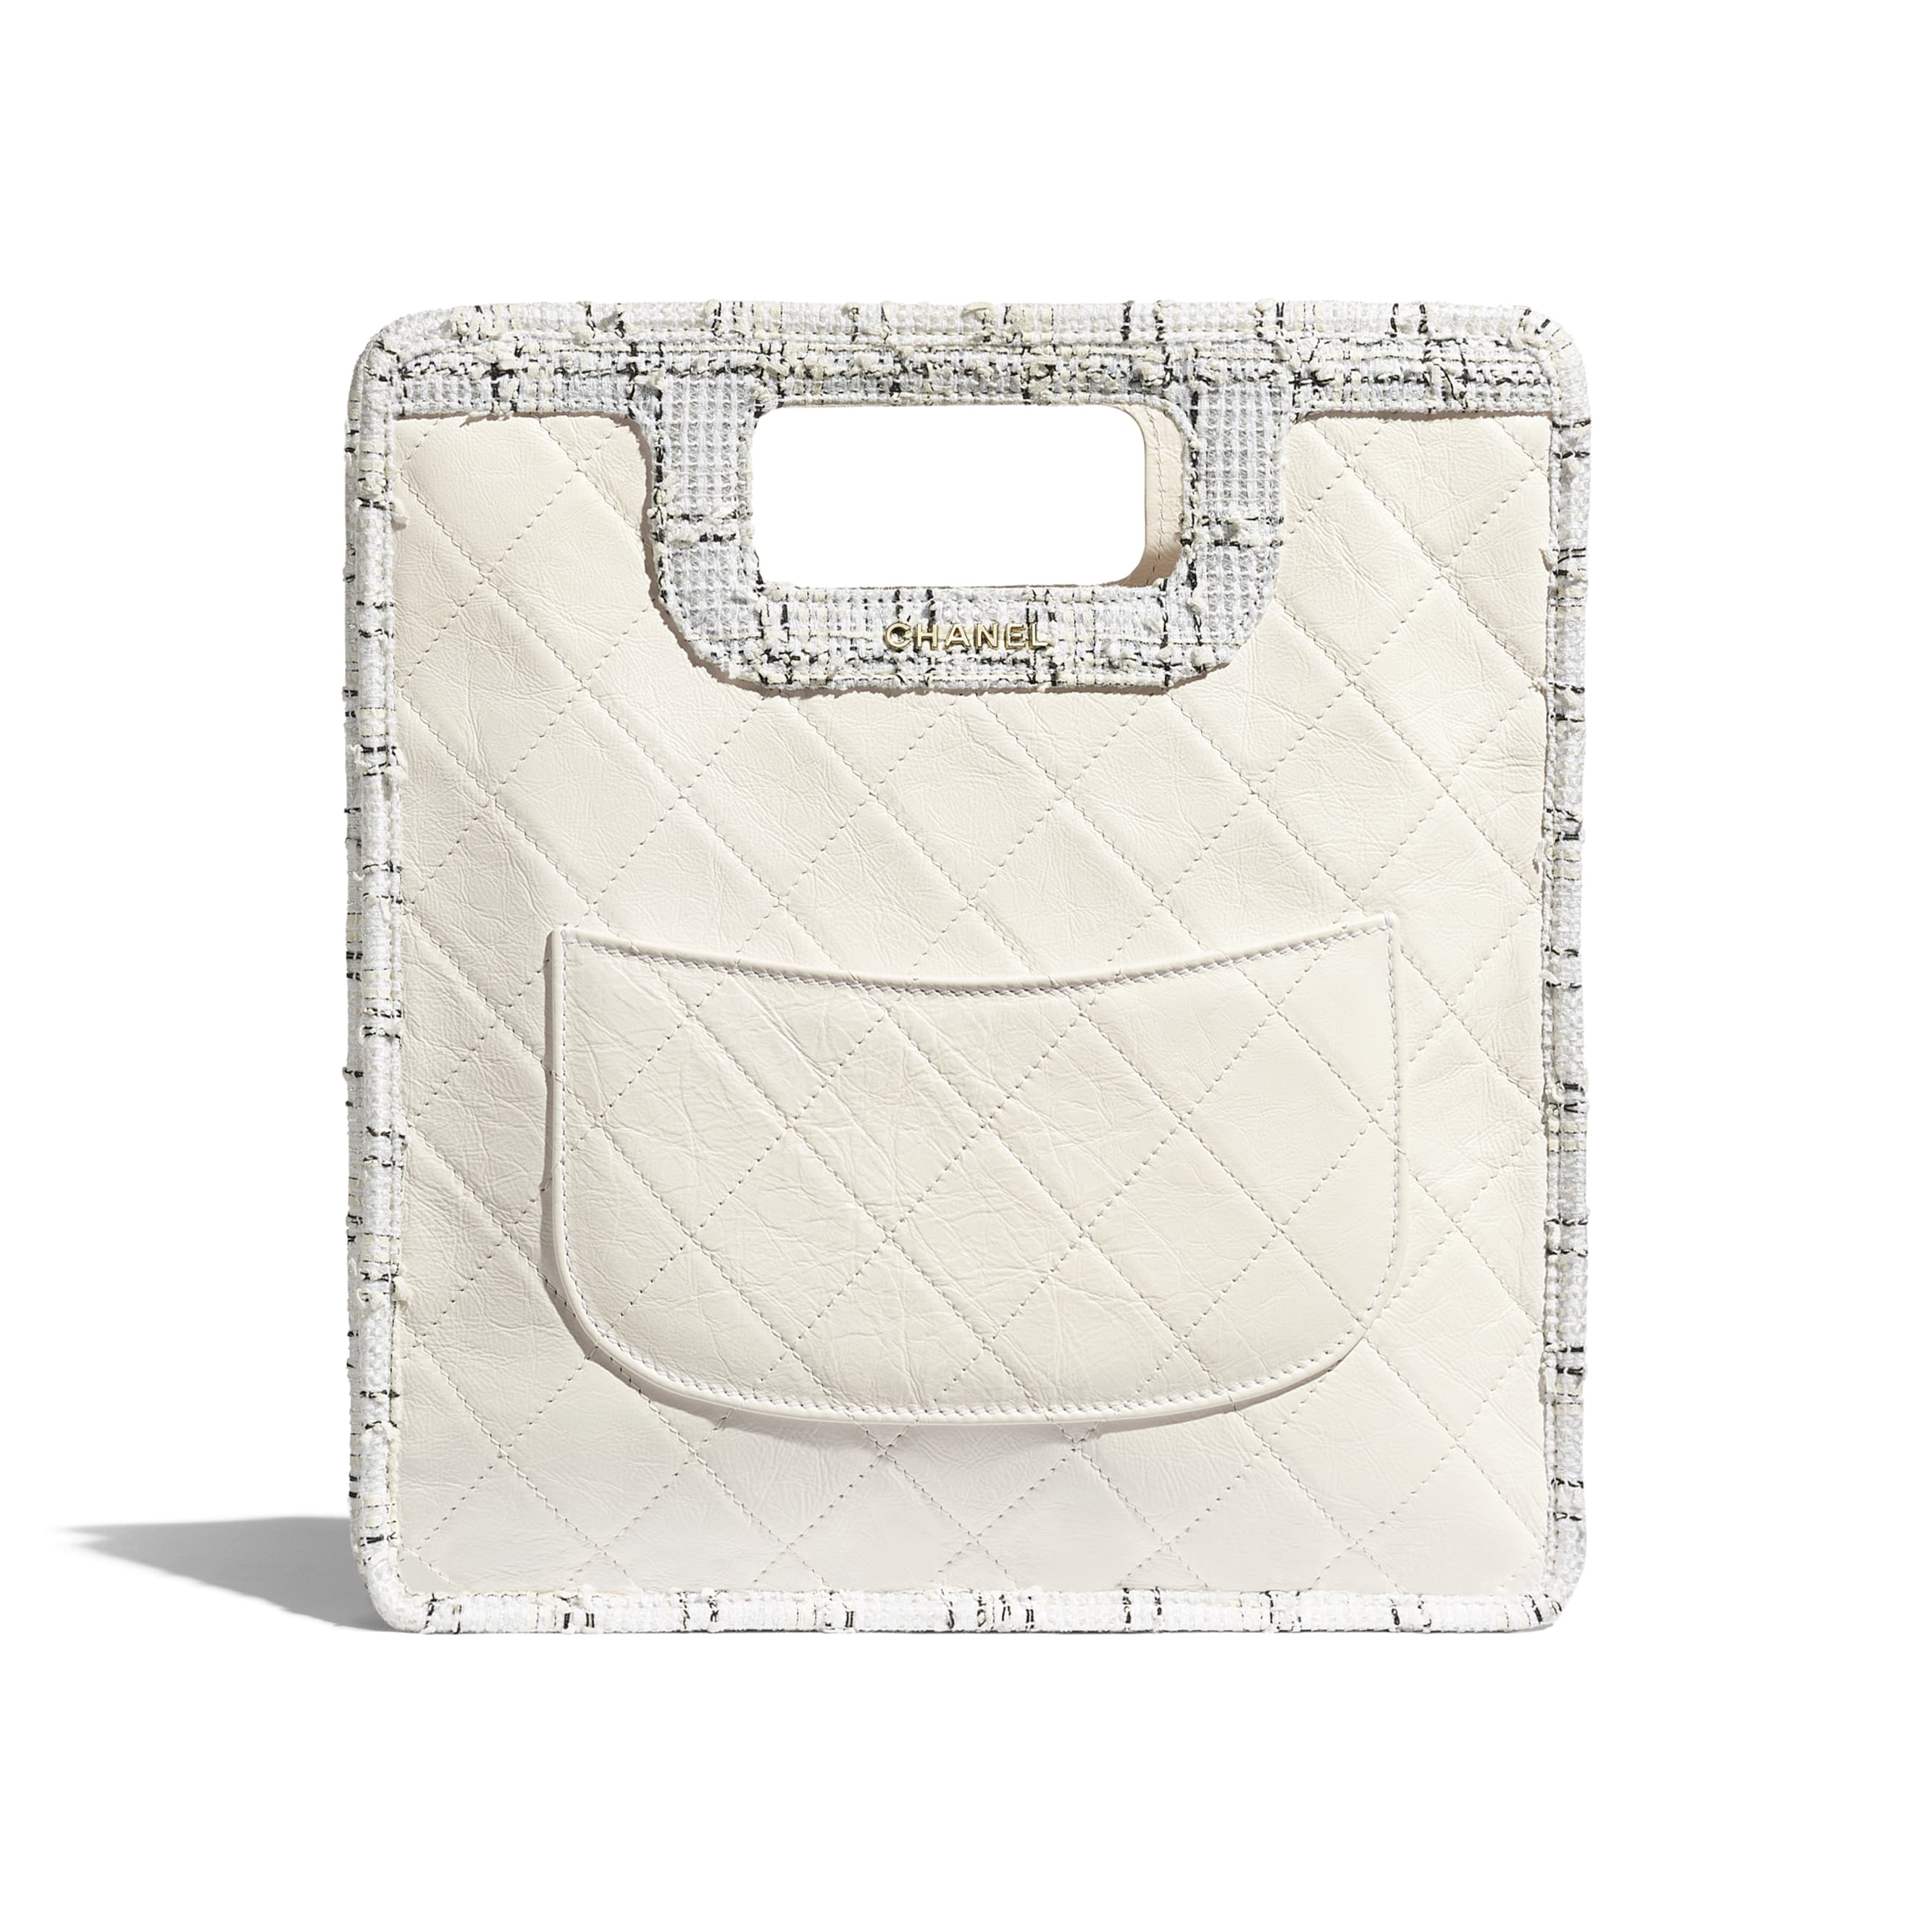 Small Shopping Bag - White, Black & Ecru - Aged Calfskin, Tweed & Gold-Tone Metal - CHANEL - Alternative view - see standard sized version